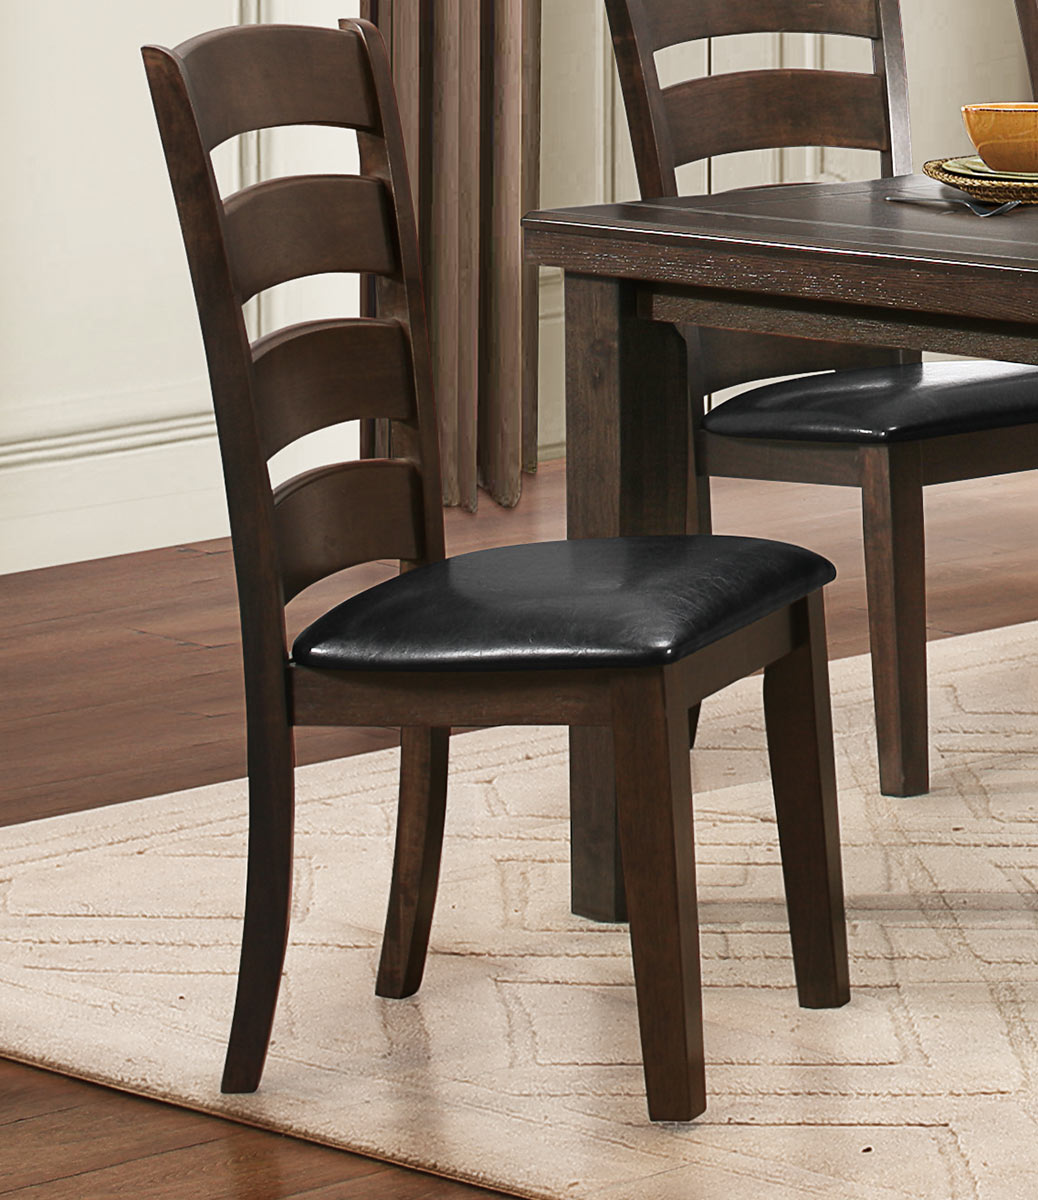 Homelegance Pacific Grove Side Chair - Brown